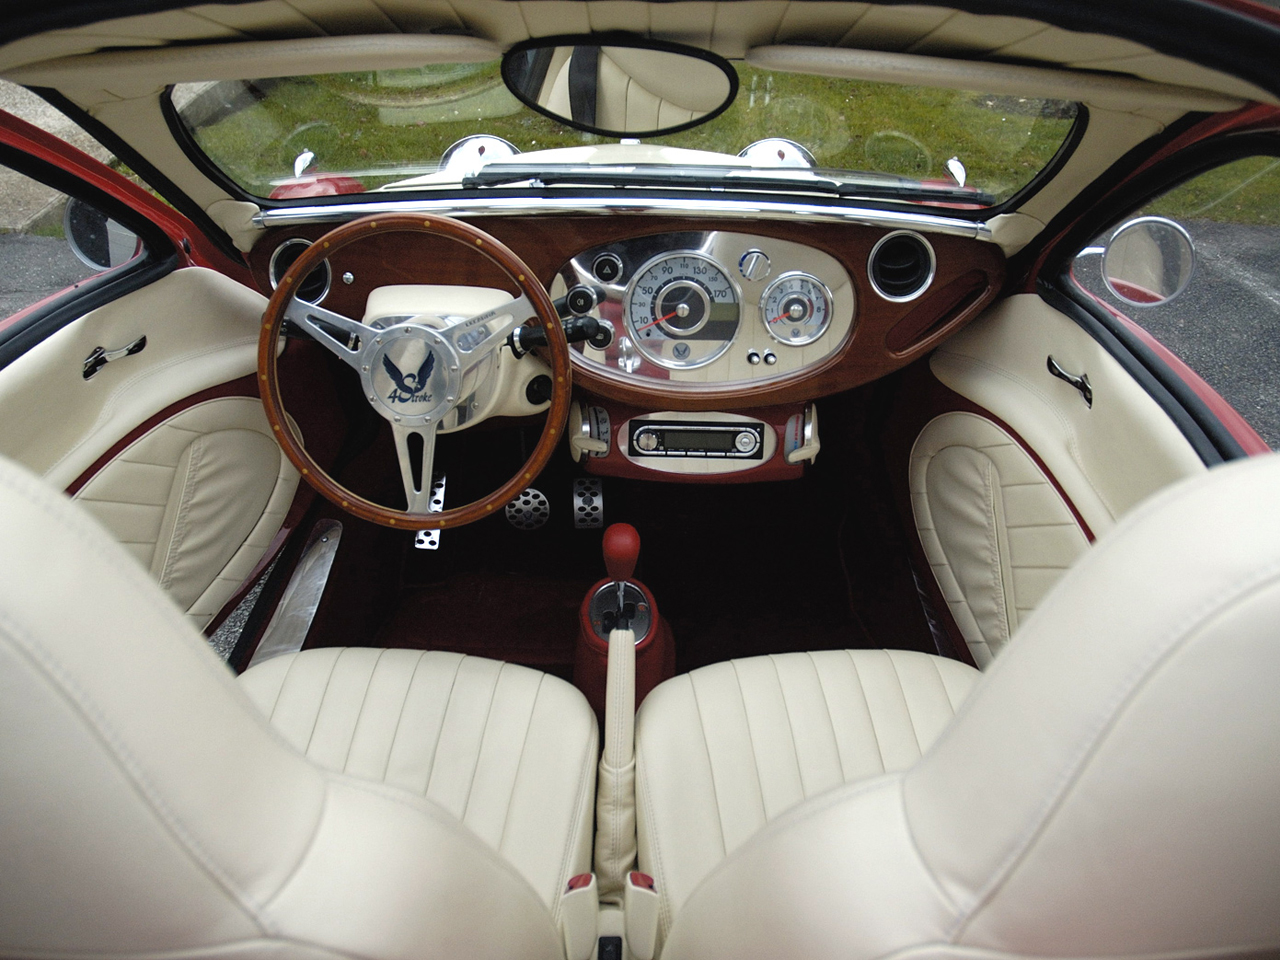 The cockpit of the 4 Stroke Rumen is a clever mixing of thirties style and 21st Century comforts, including air-conditioning. (Picture courtesy autowp.ru).